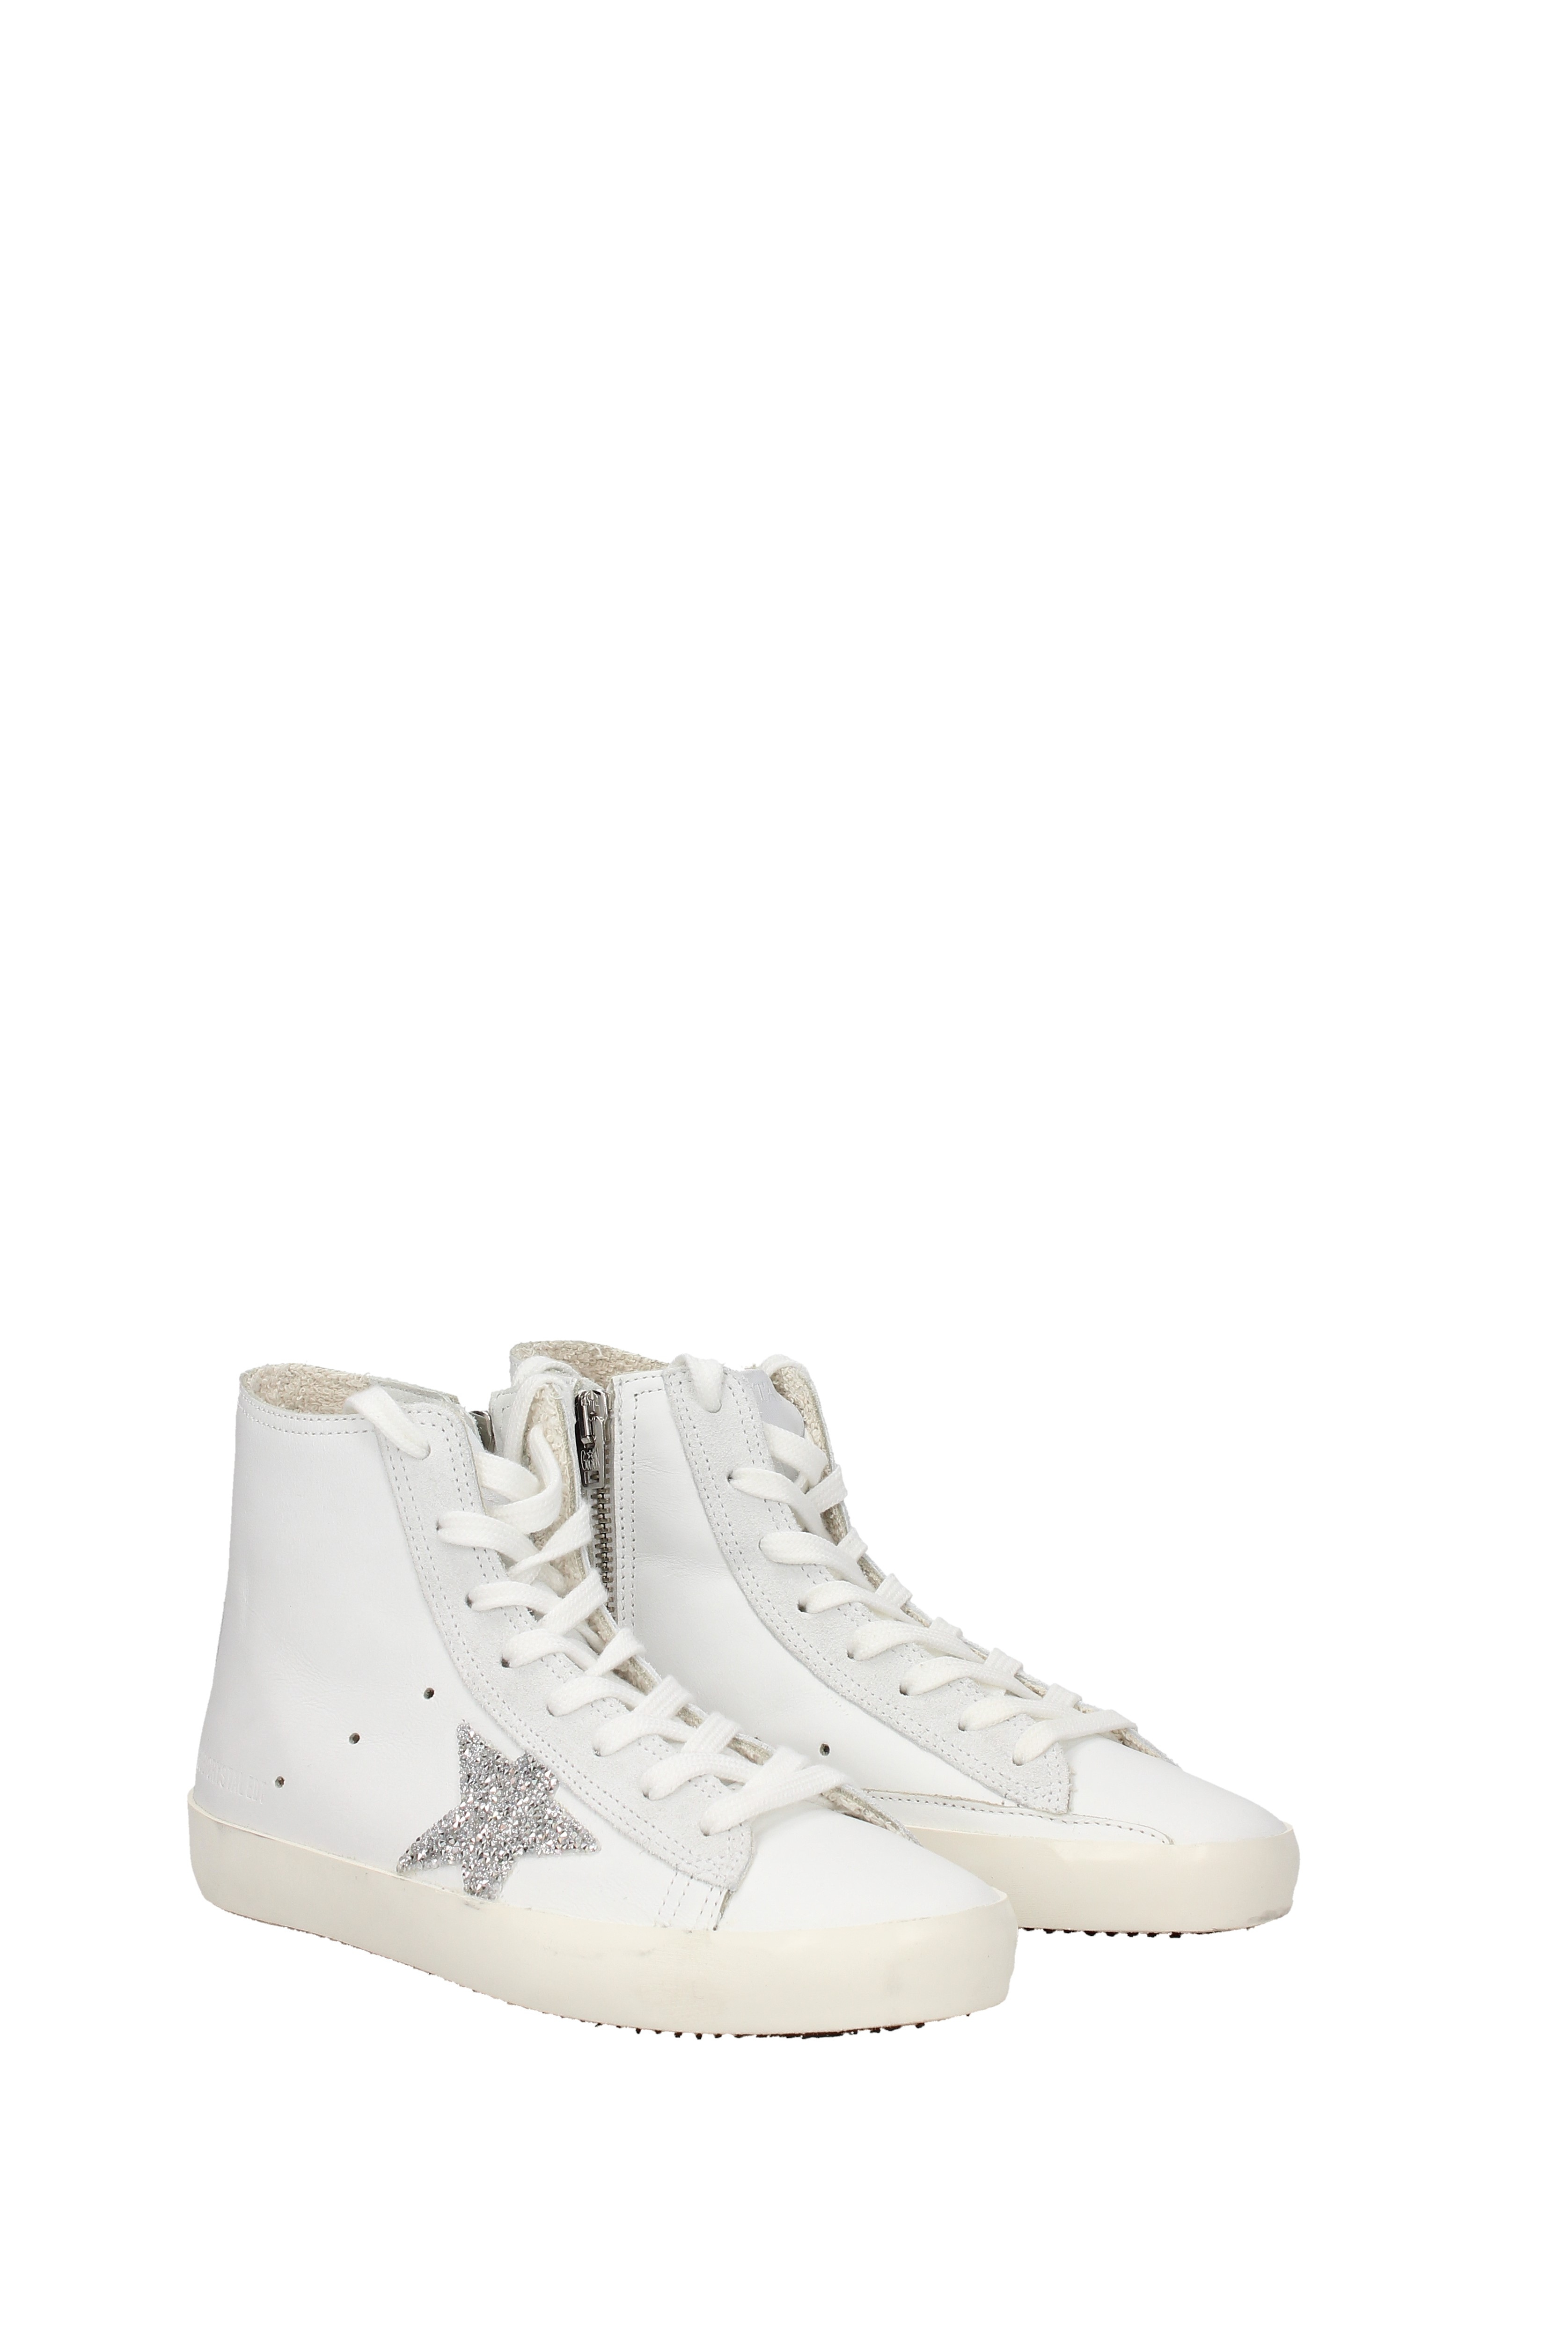 Sneakers-Golden-Goose-FRANCY-CRYSTAL-EDITION-Donna-Pelle-G30WS591